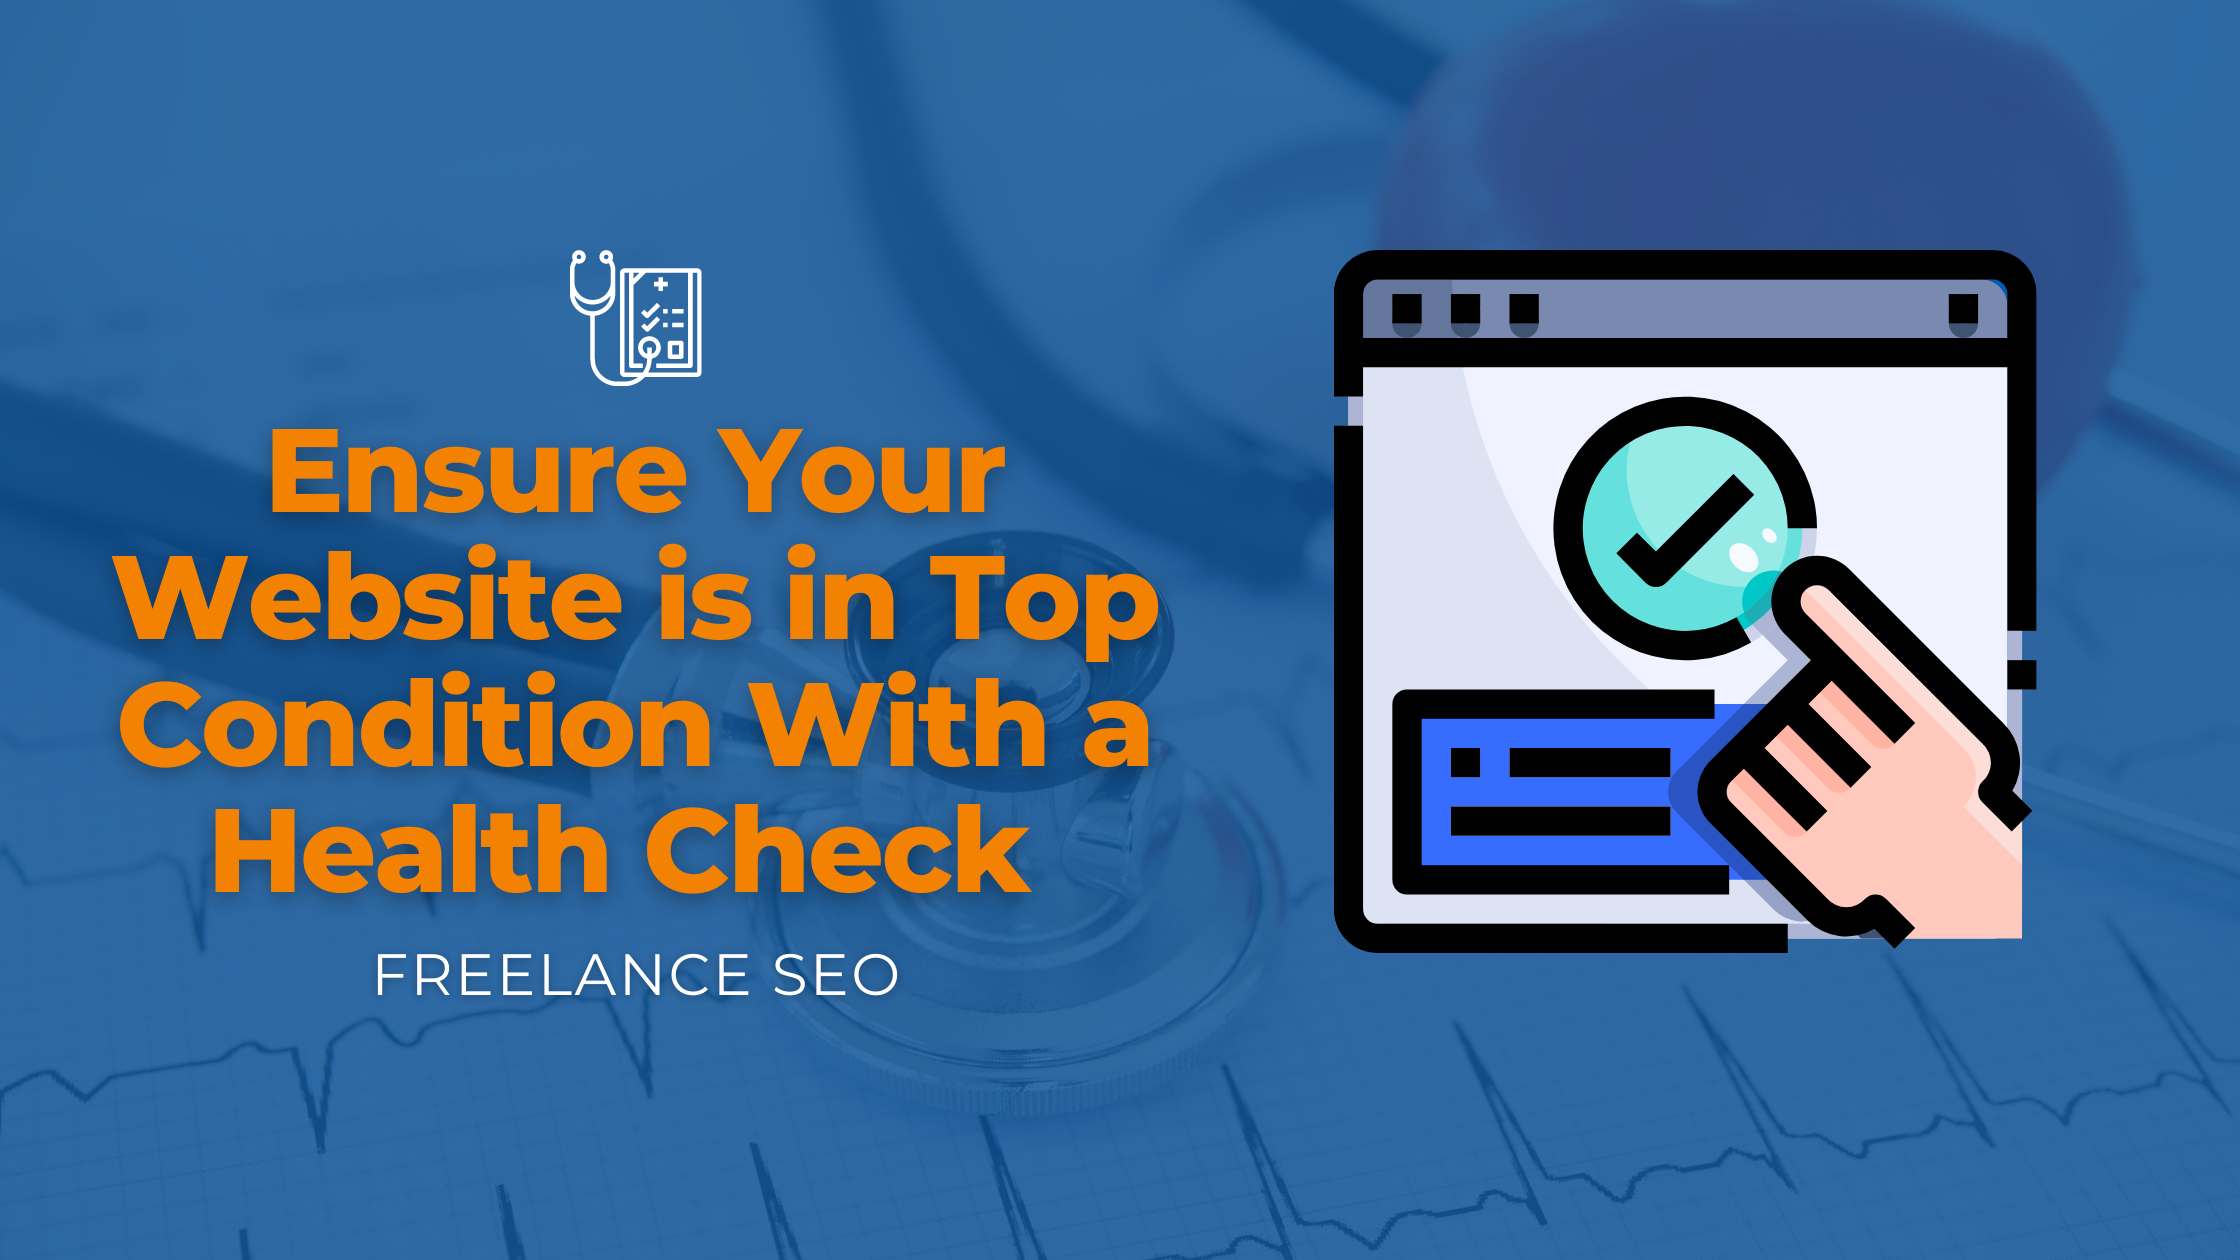 Ensure Your Website is in Top Condition With a Health Check